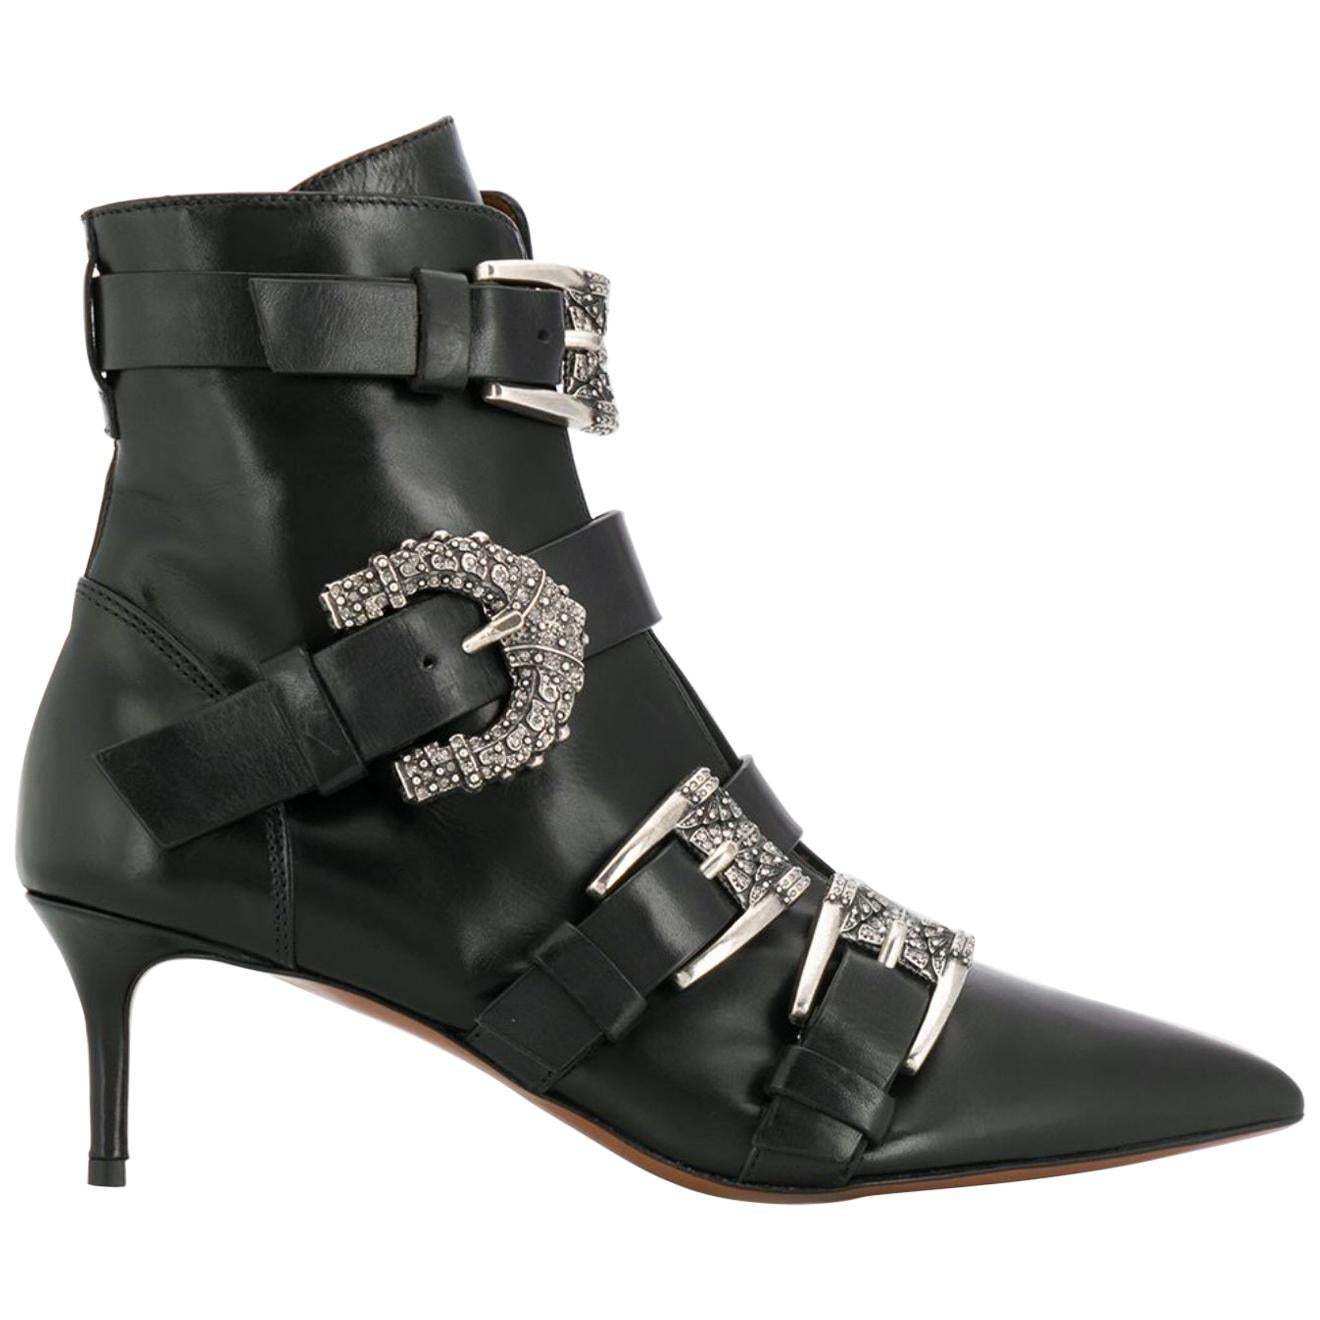 Etro Runway Embellished Side Buckle Black Leather Ankle Boots Size 36